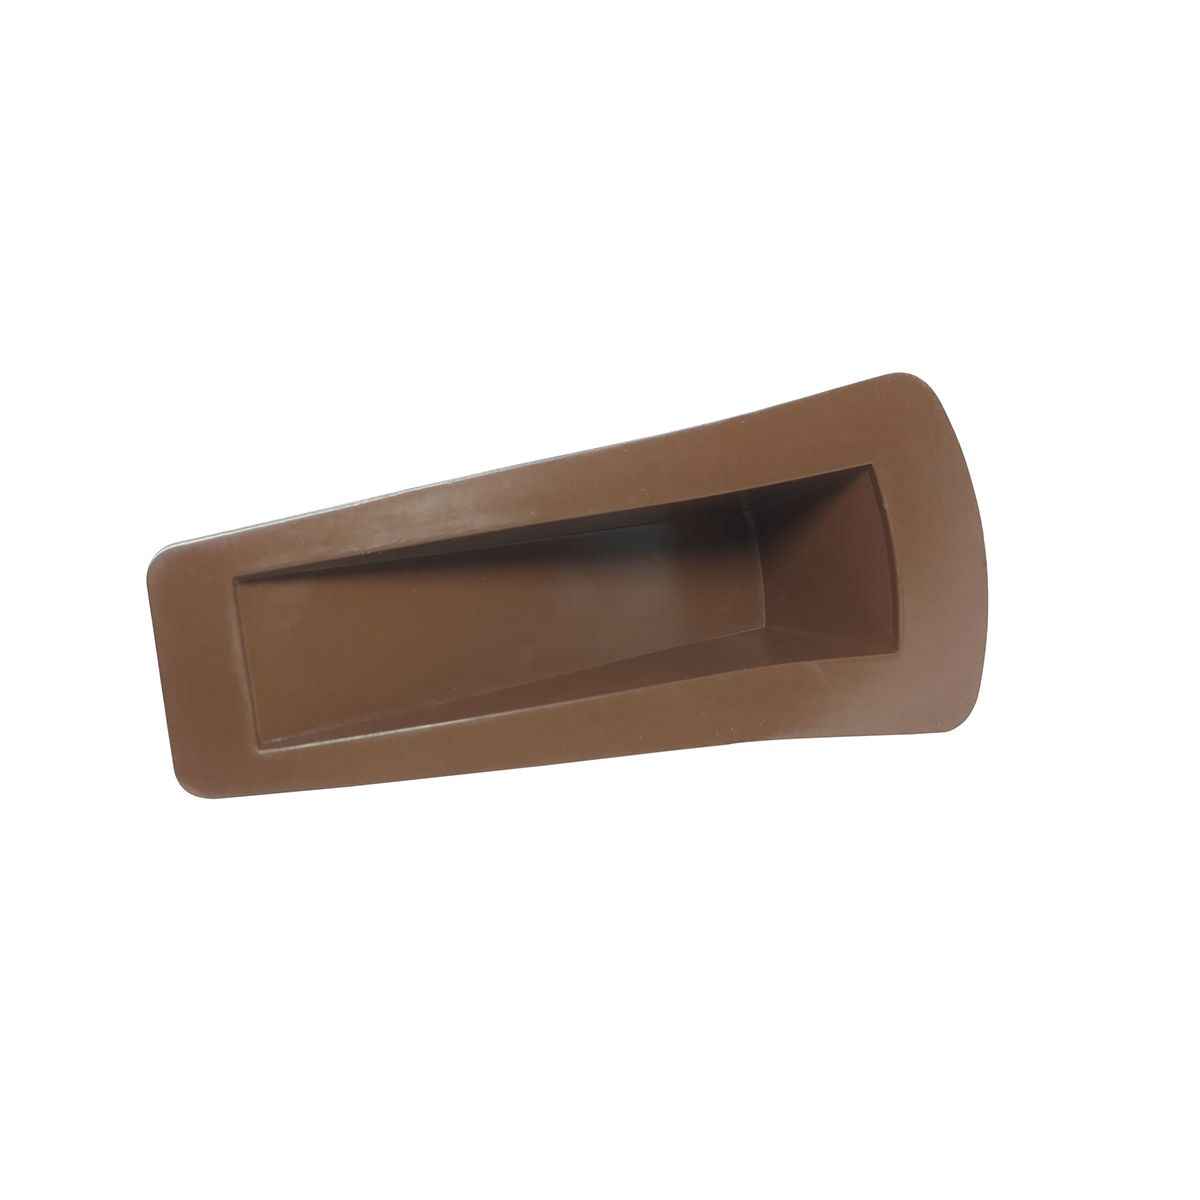 Rubber door stopper for Home and Office